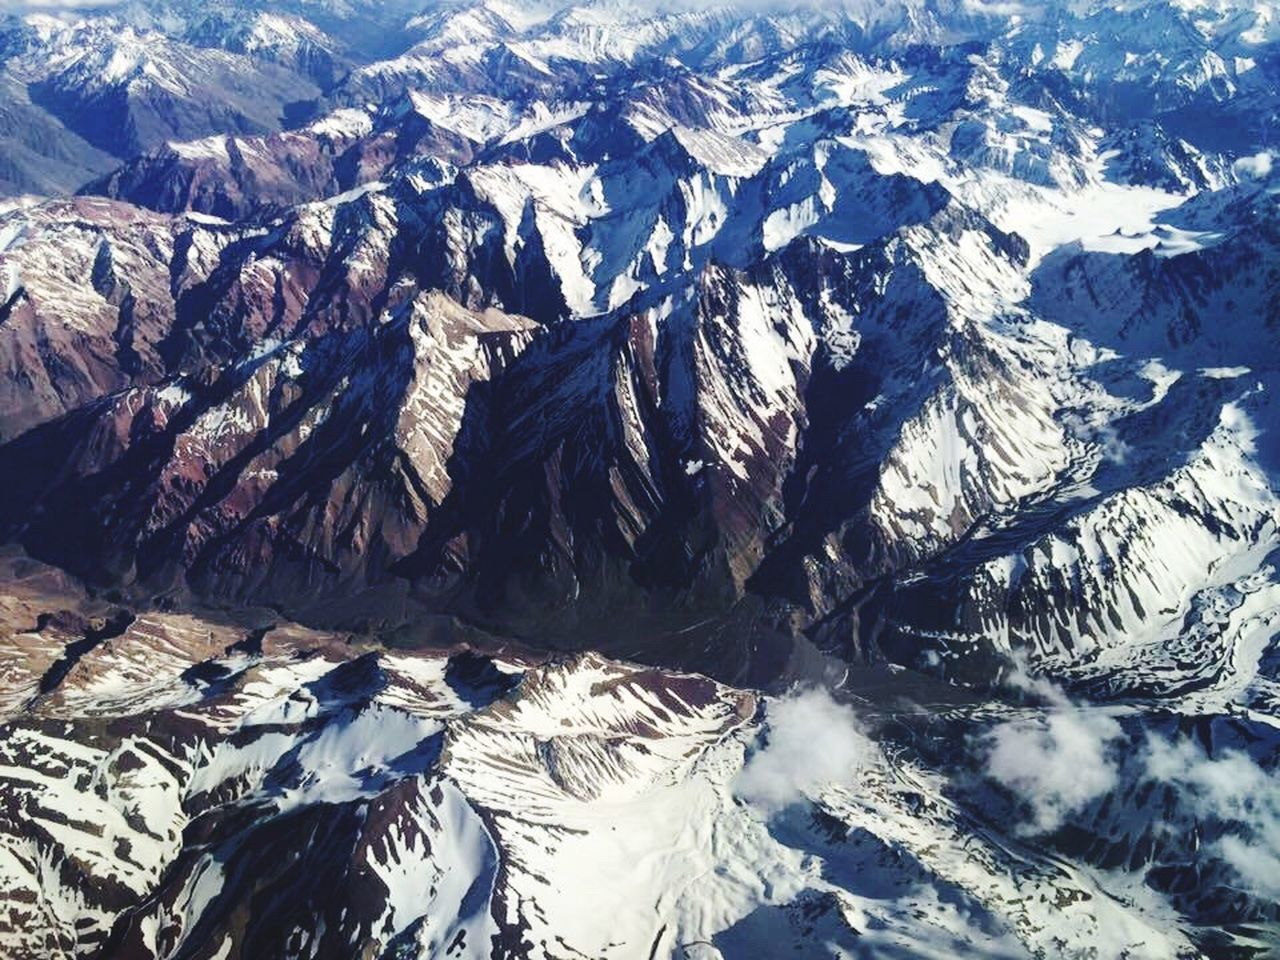 Snow Mountain Nature Landscape Scenics Beauty In Nature Flying Cordillera De Los Andes Andesmountains Chile Cold Temperature Peace Power In Nature Travel Destinations Travel